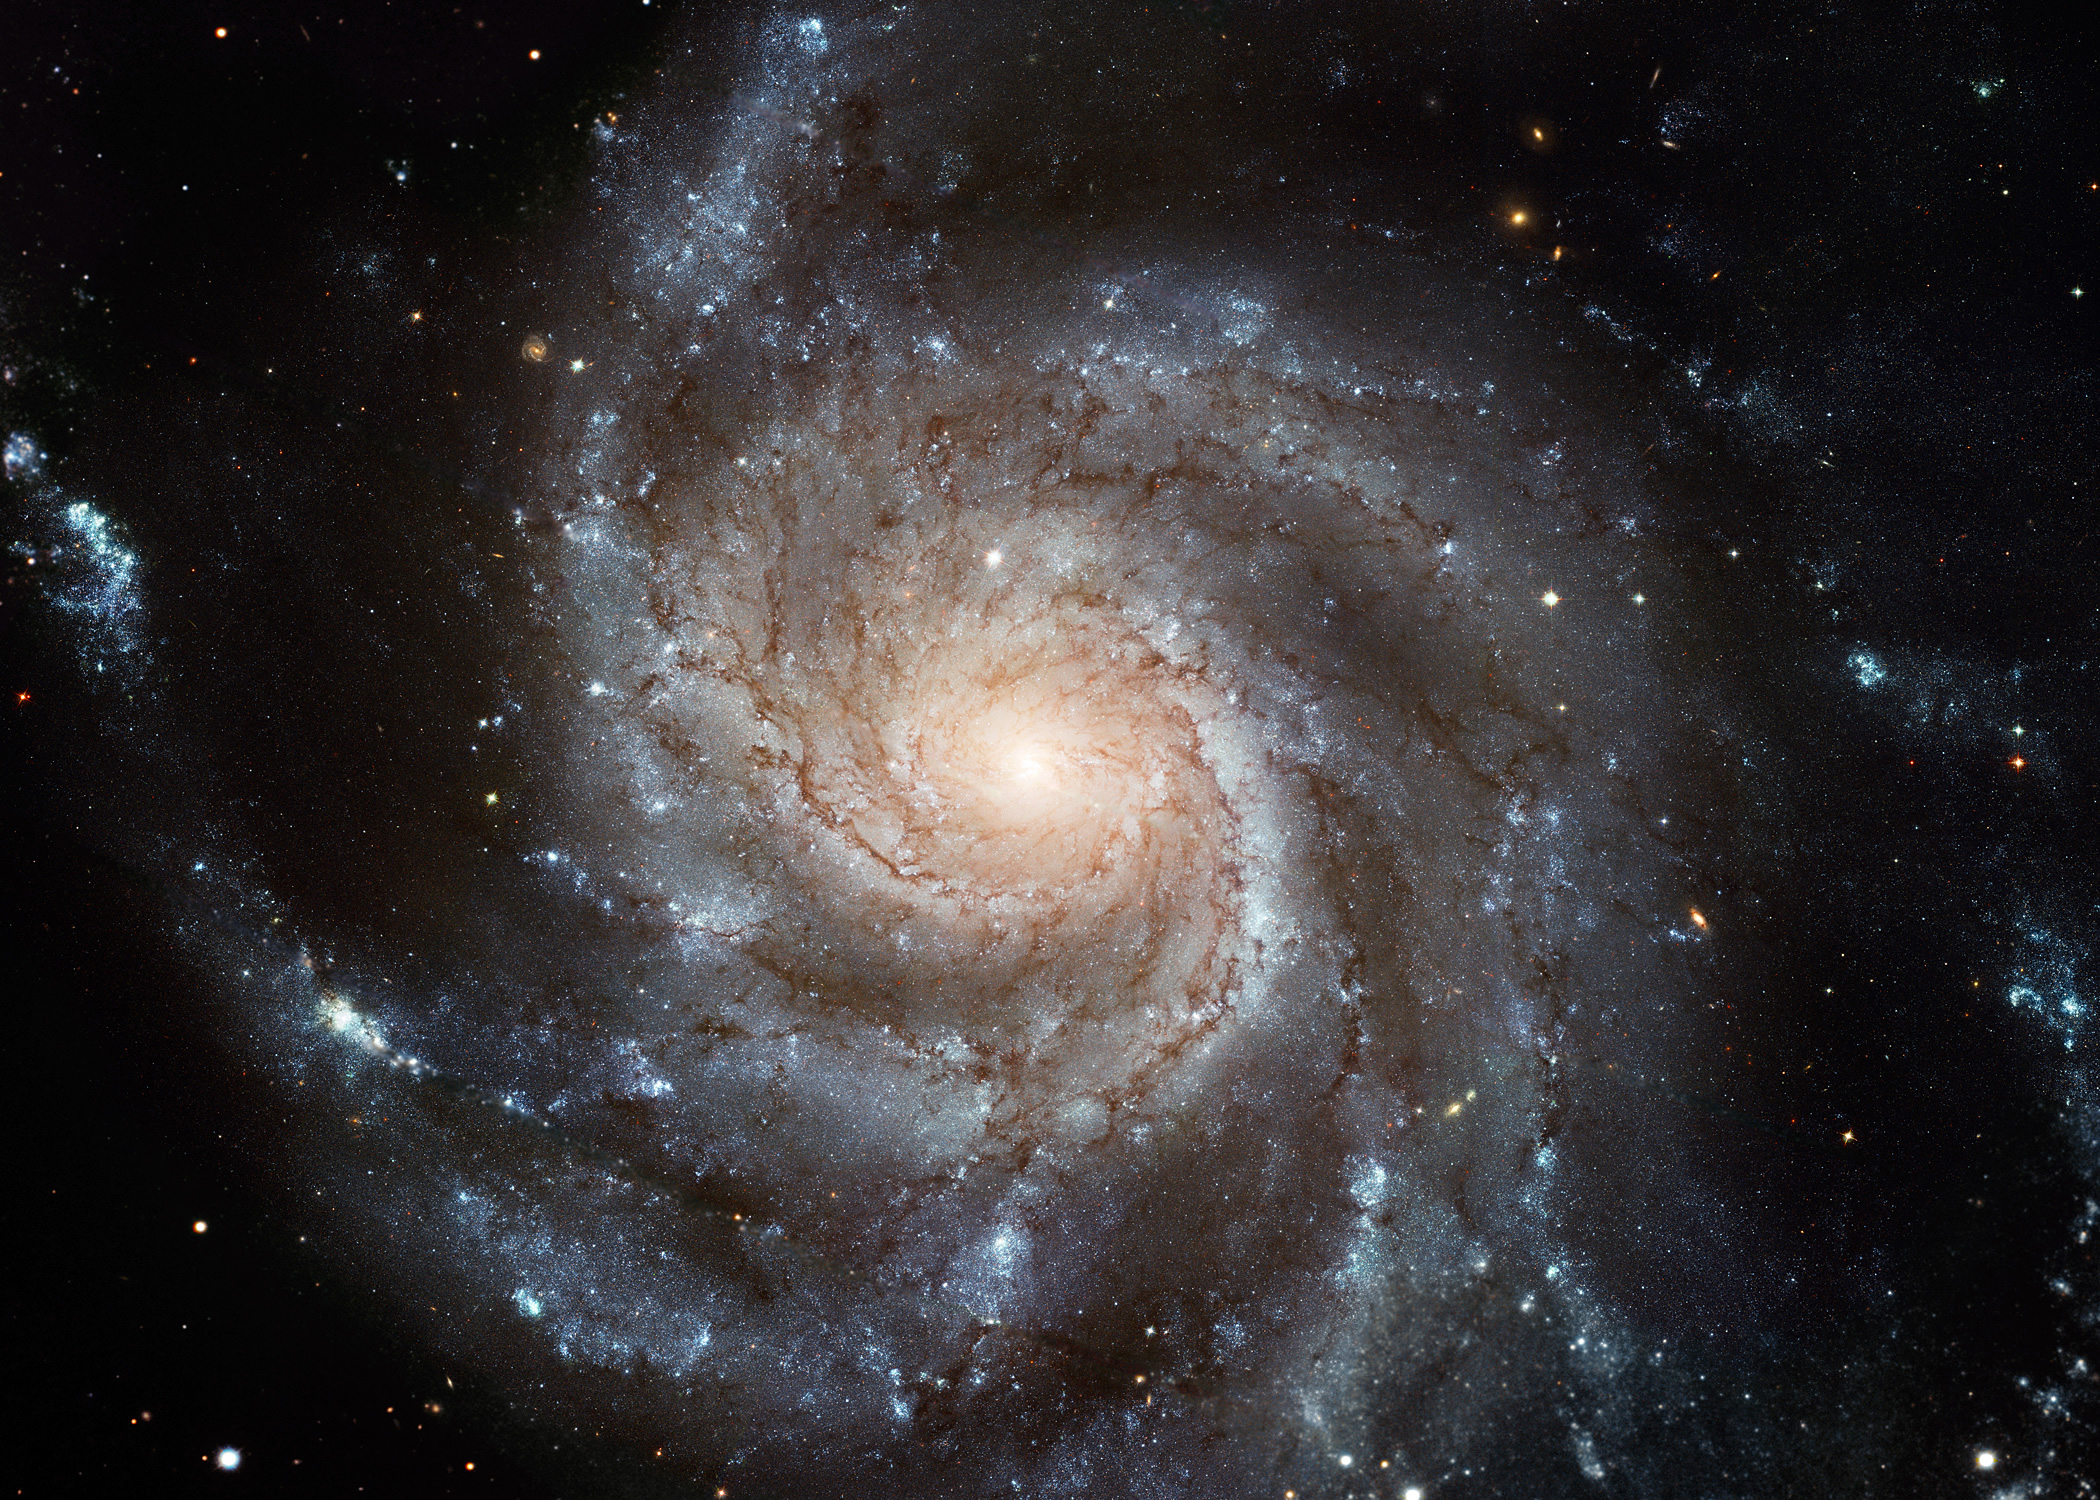 The Pinwheel Galaxy M101